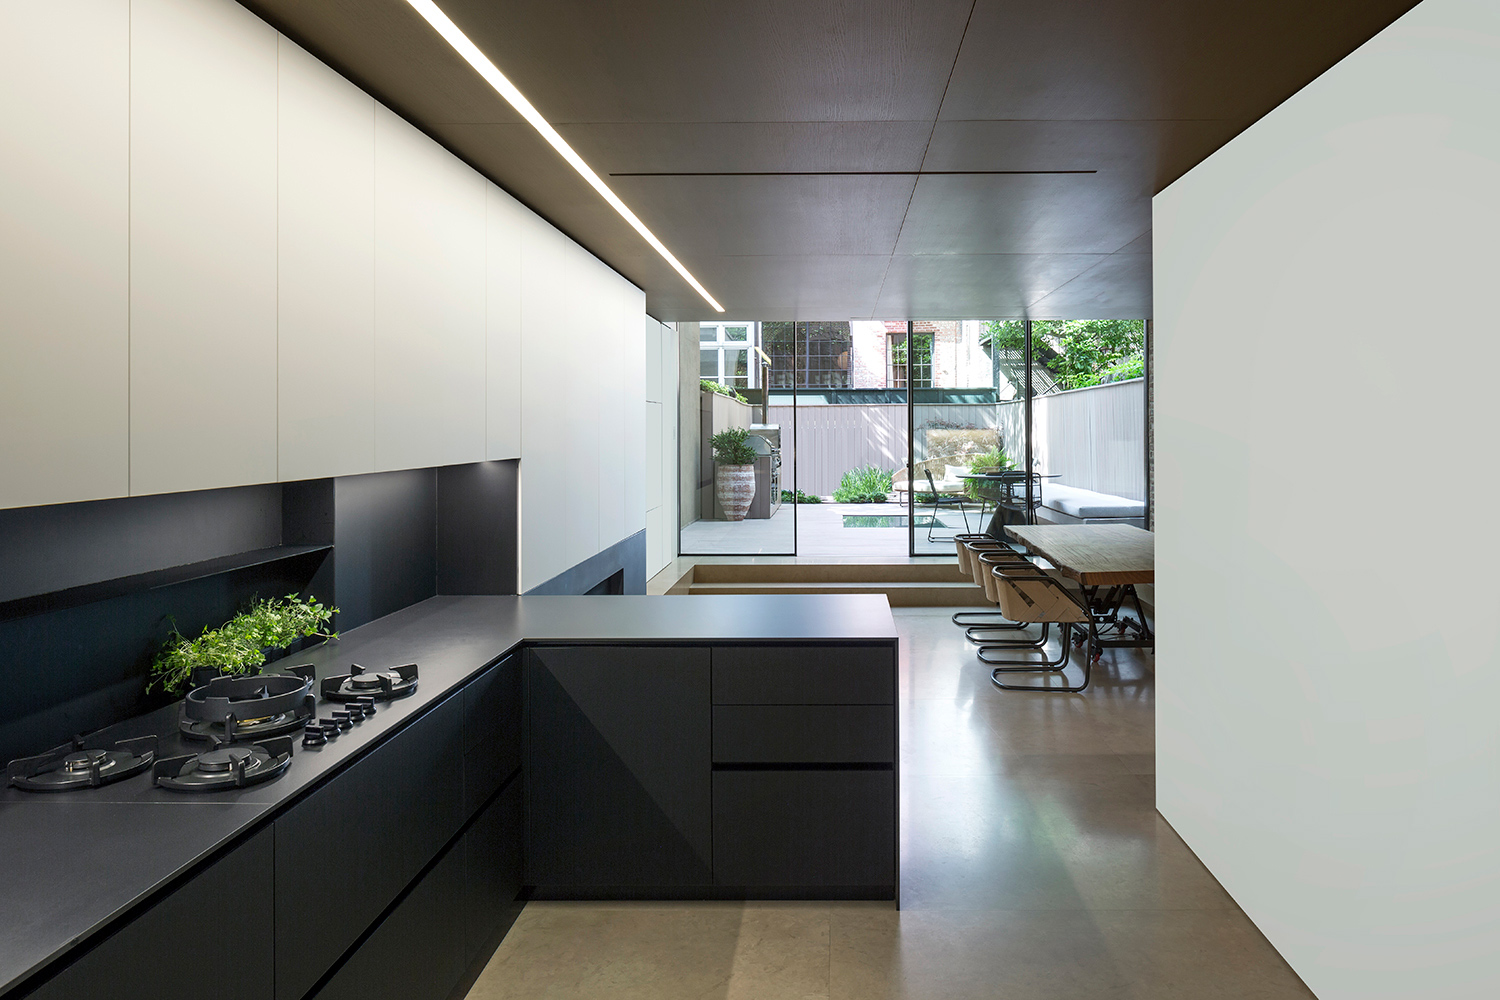 To complement the dark atmosphere of the kitchen, white panels and woodwork brought lightness to the environment. Filippo Bamberghi